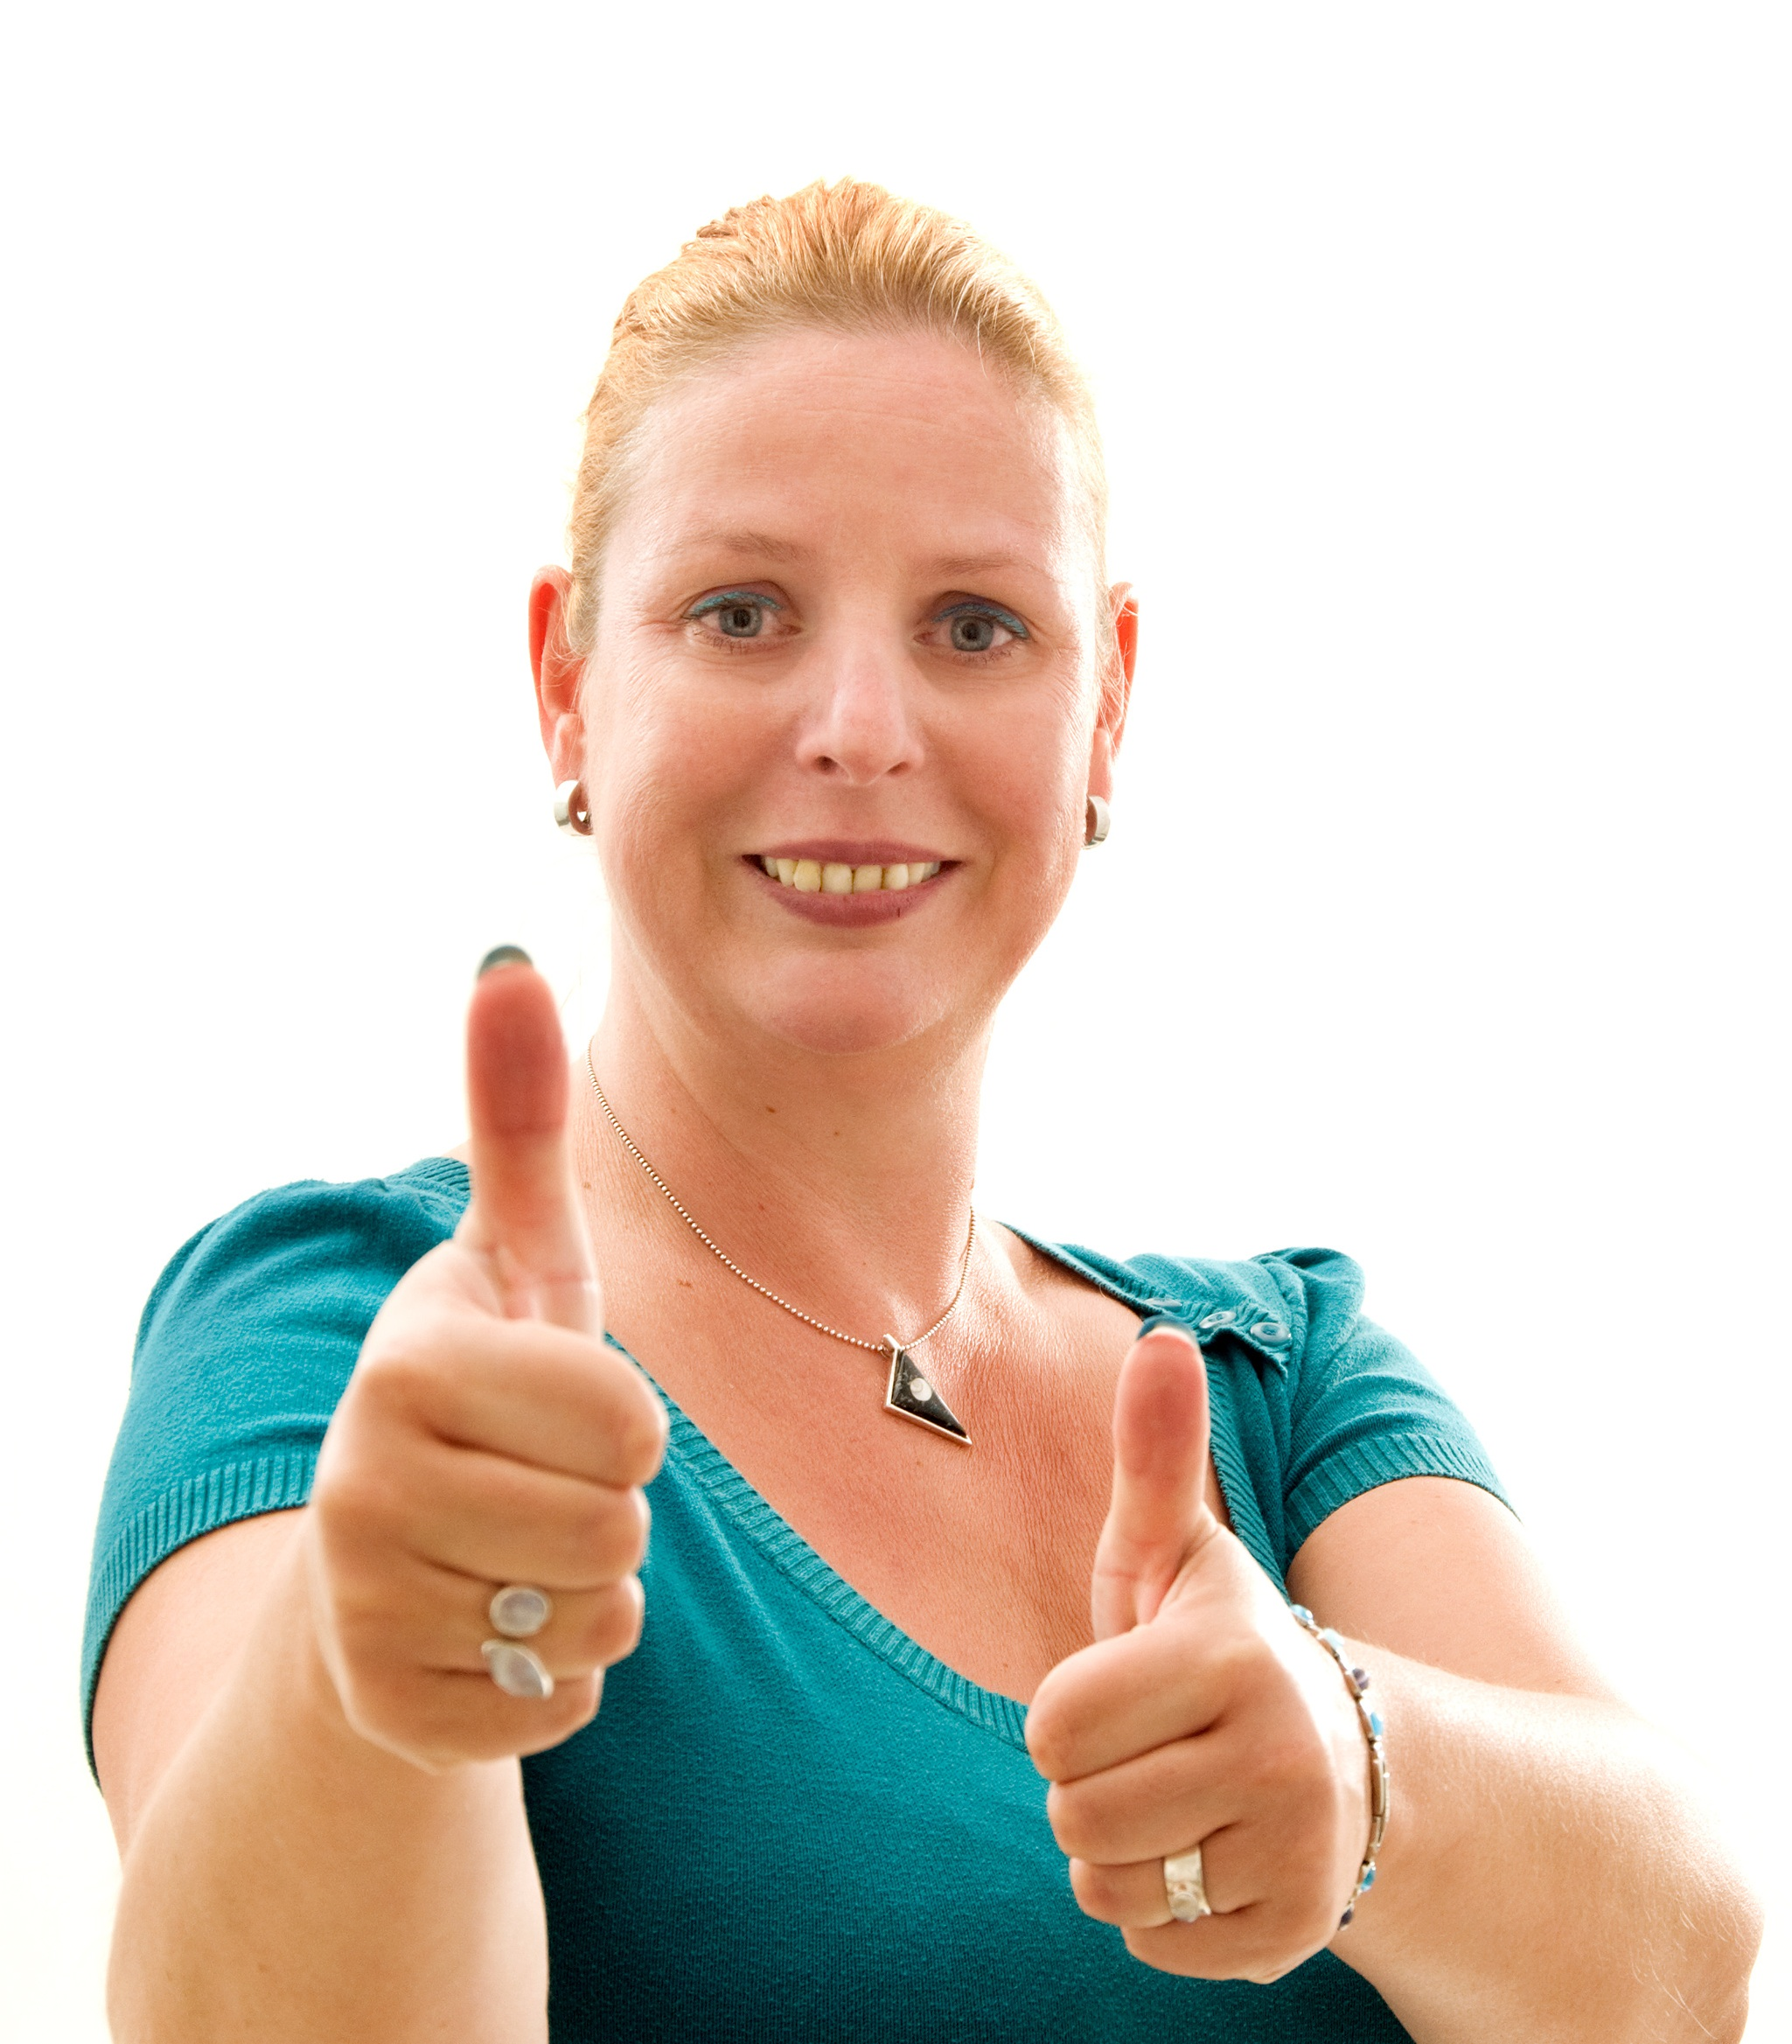 Claudia Kimich Thumbs up